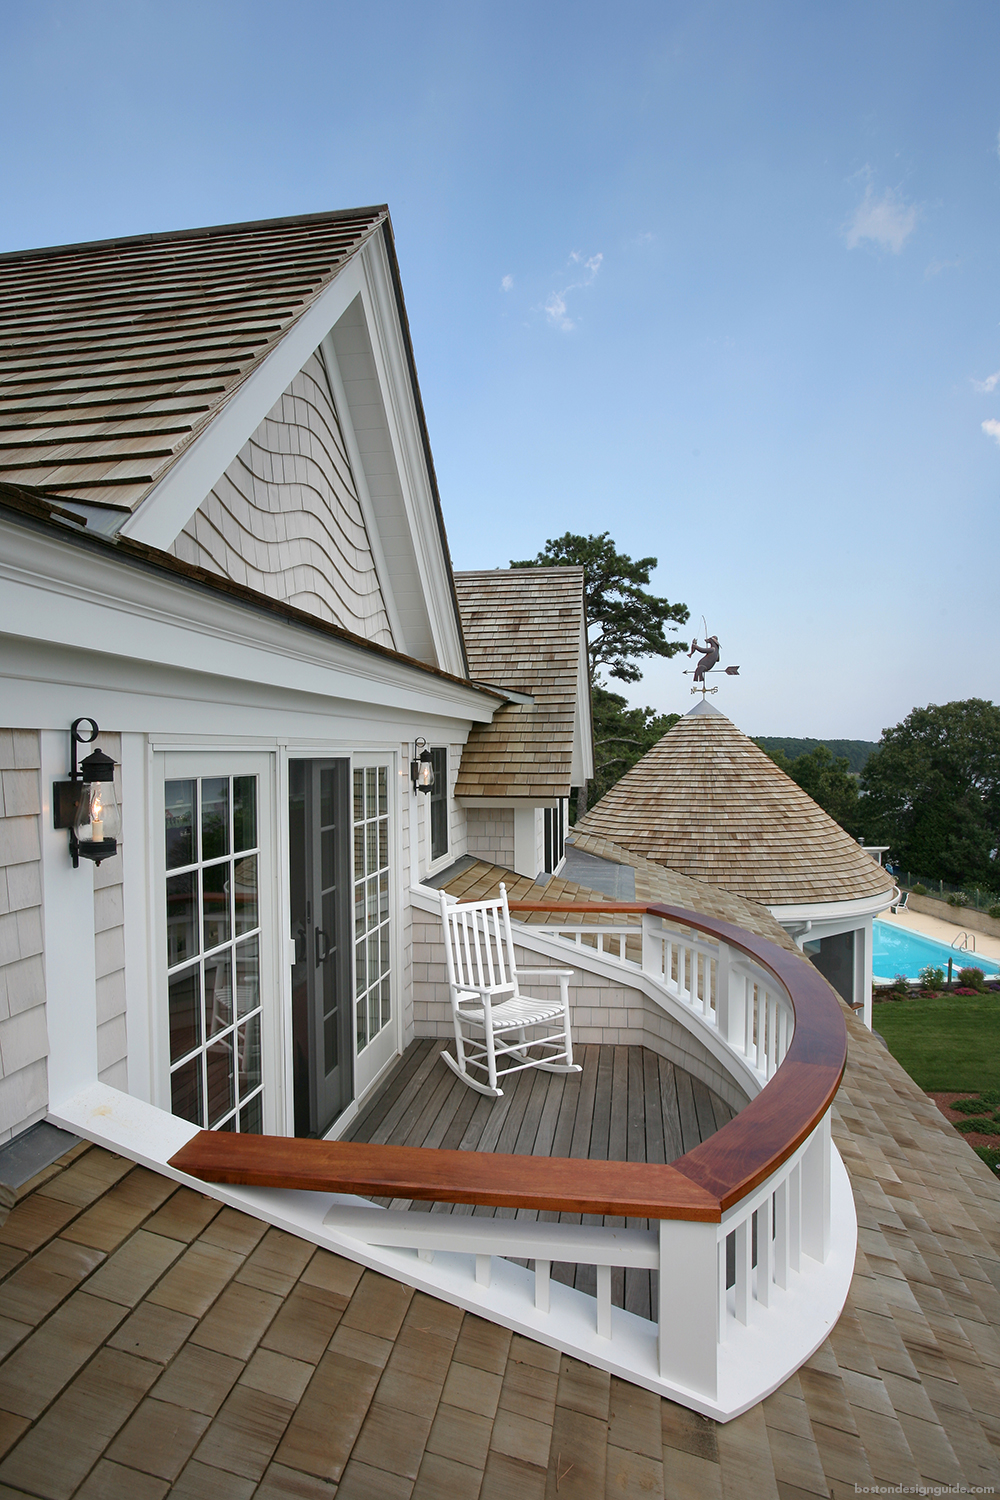 Cape Cod Residential Architecture